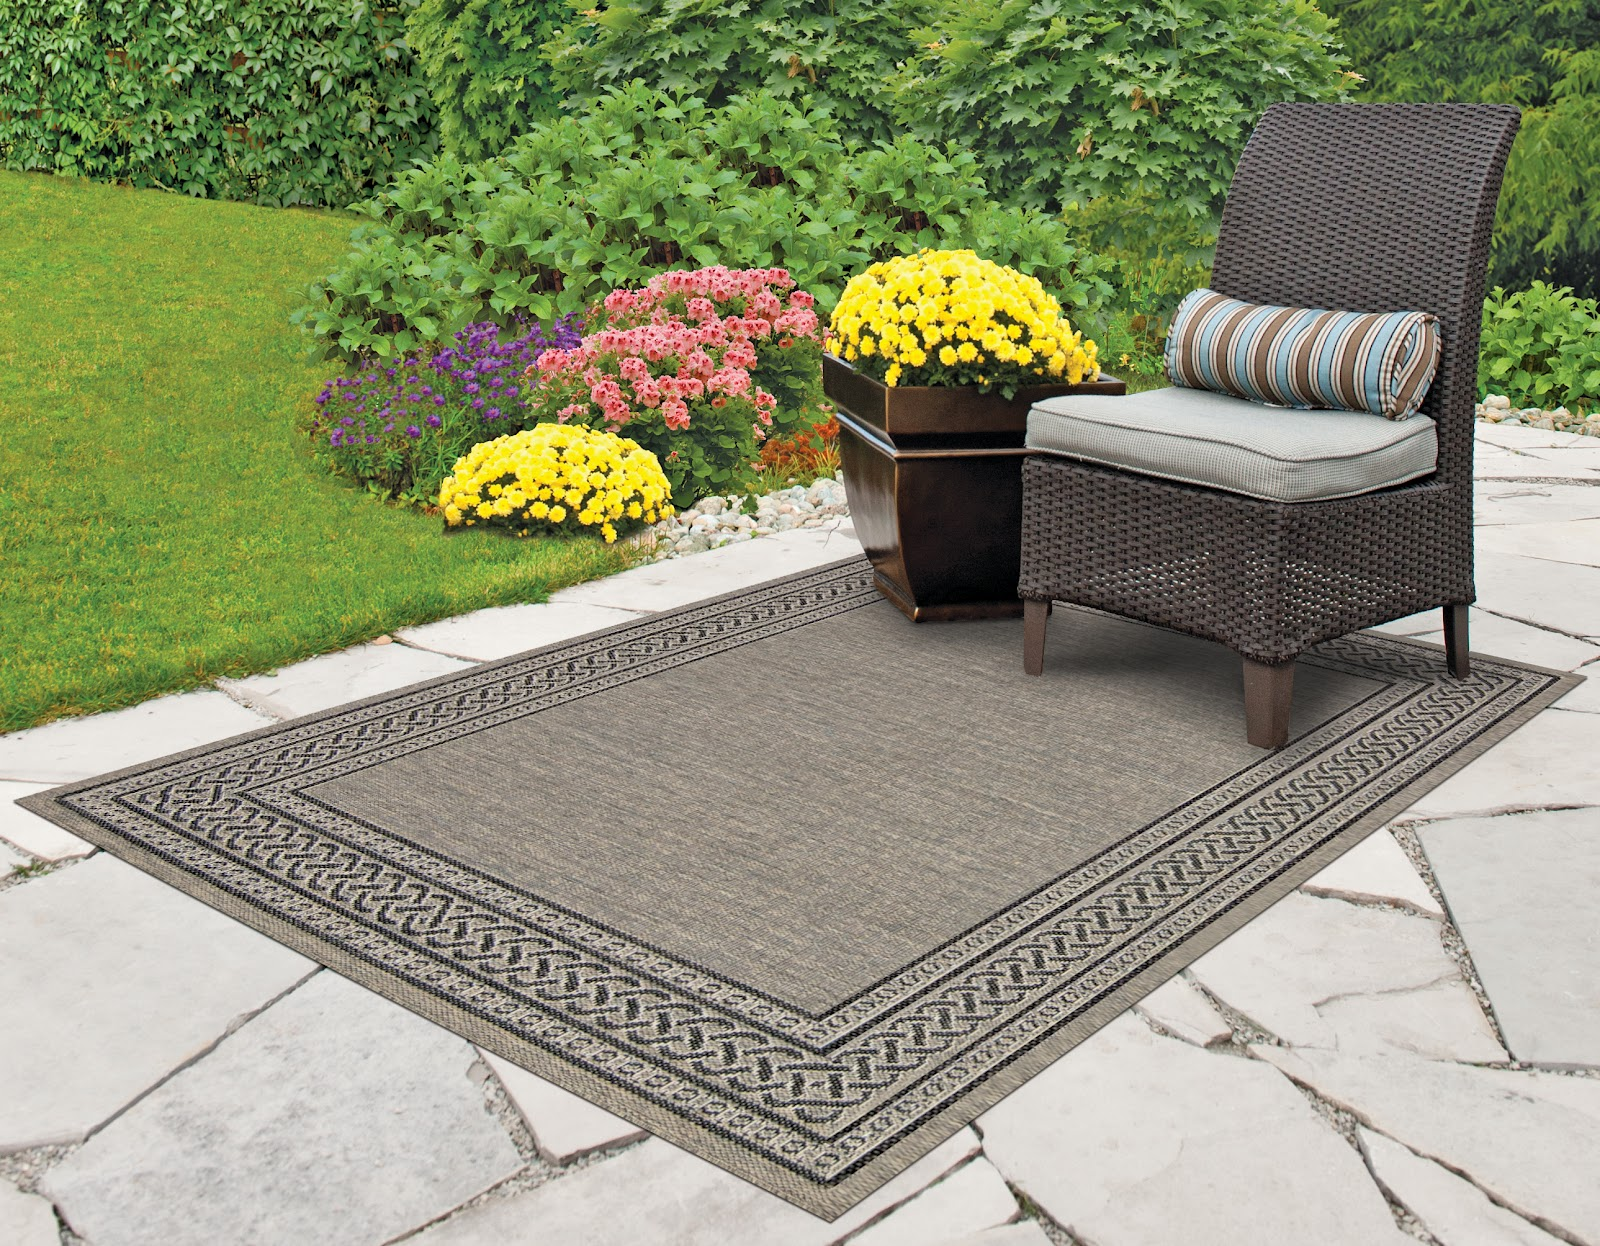 The Floor Decor Blog: Welcome Guests With An Inviting